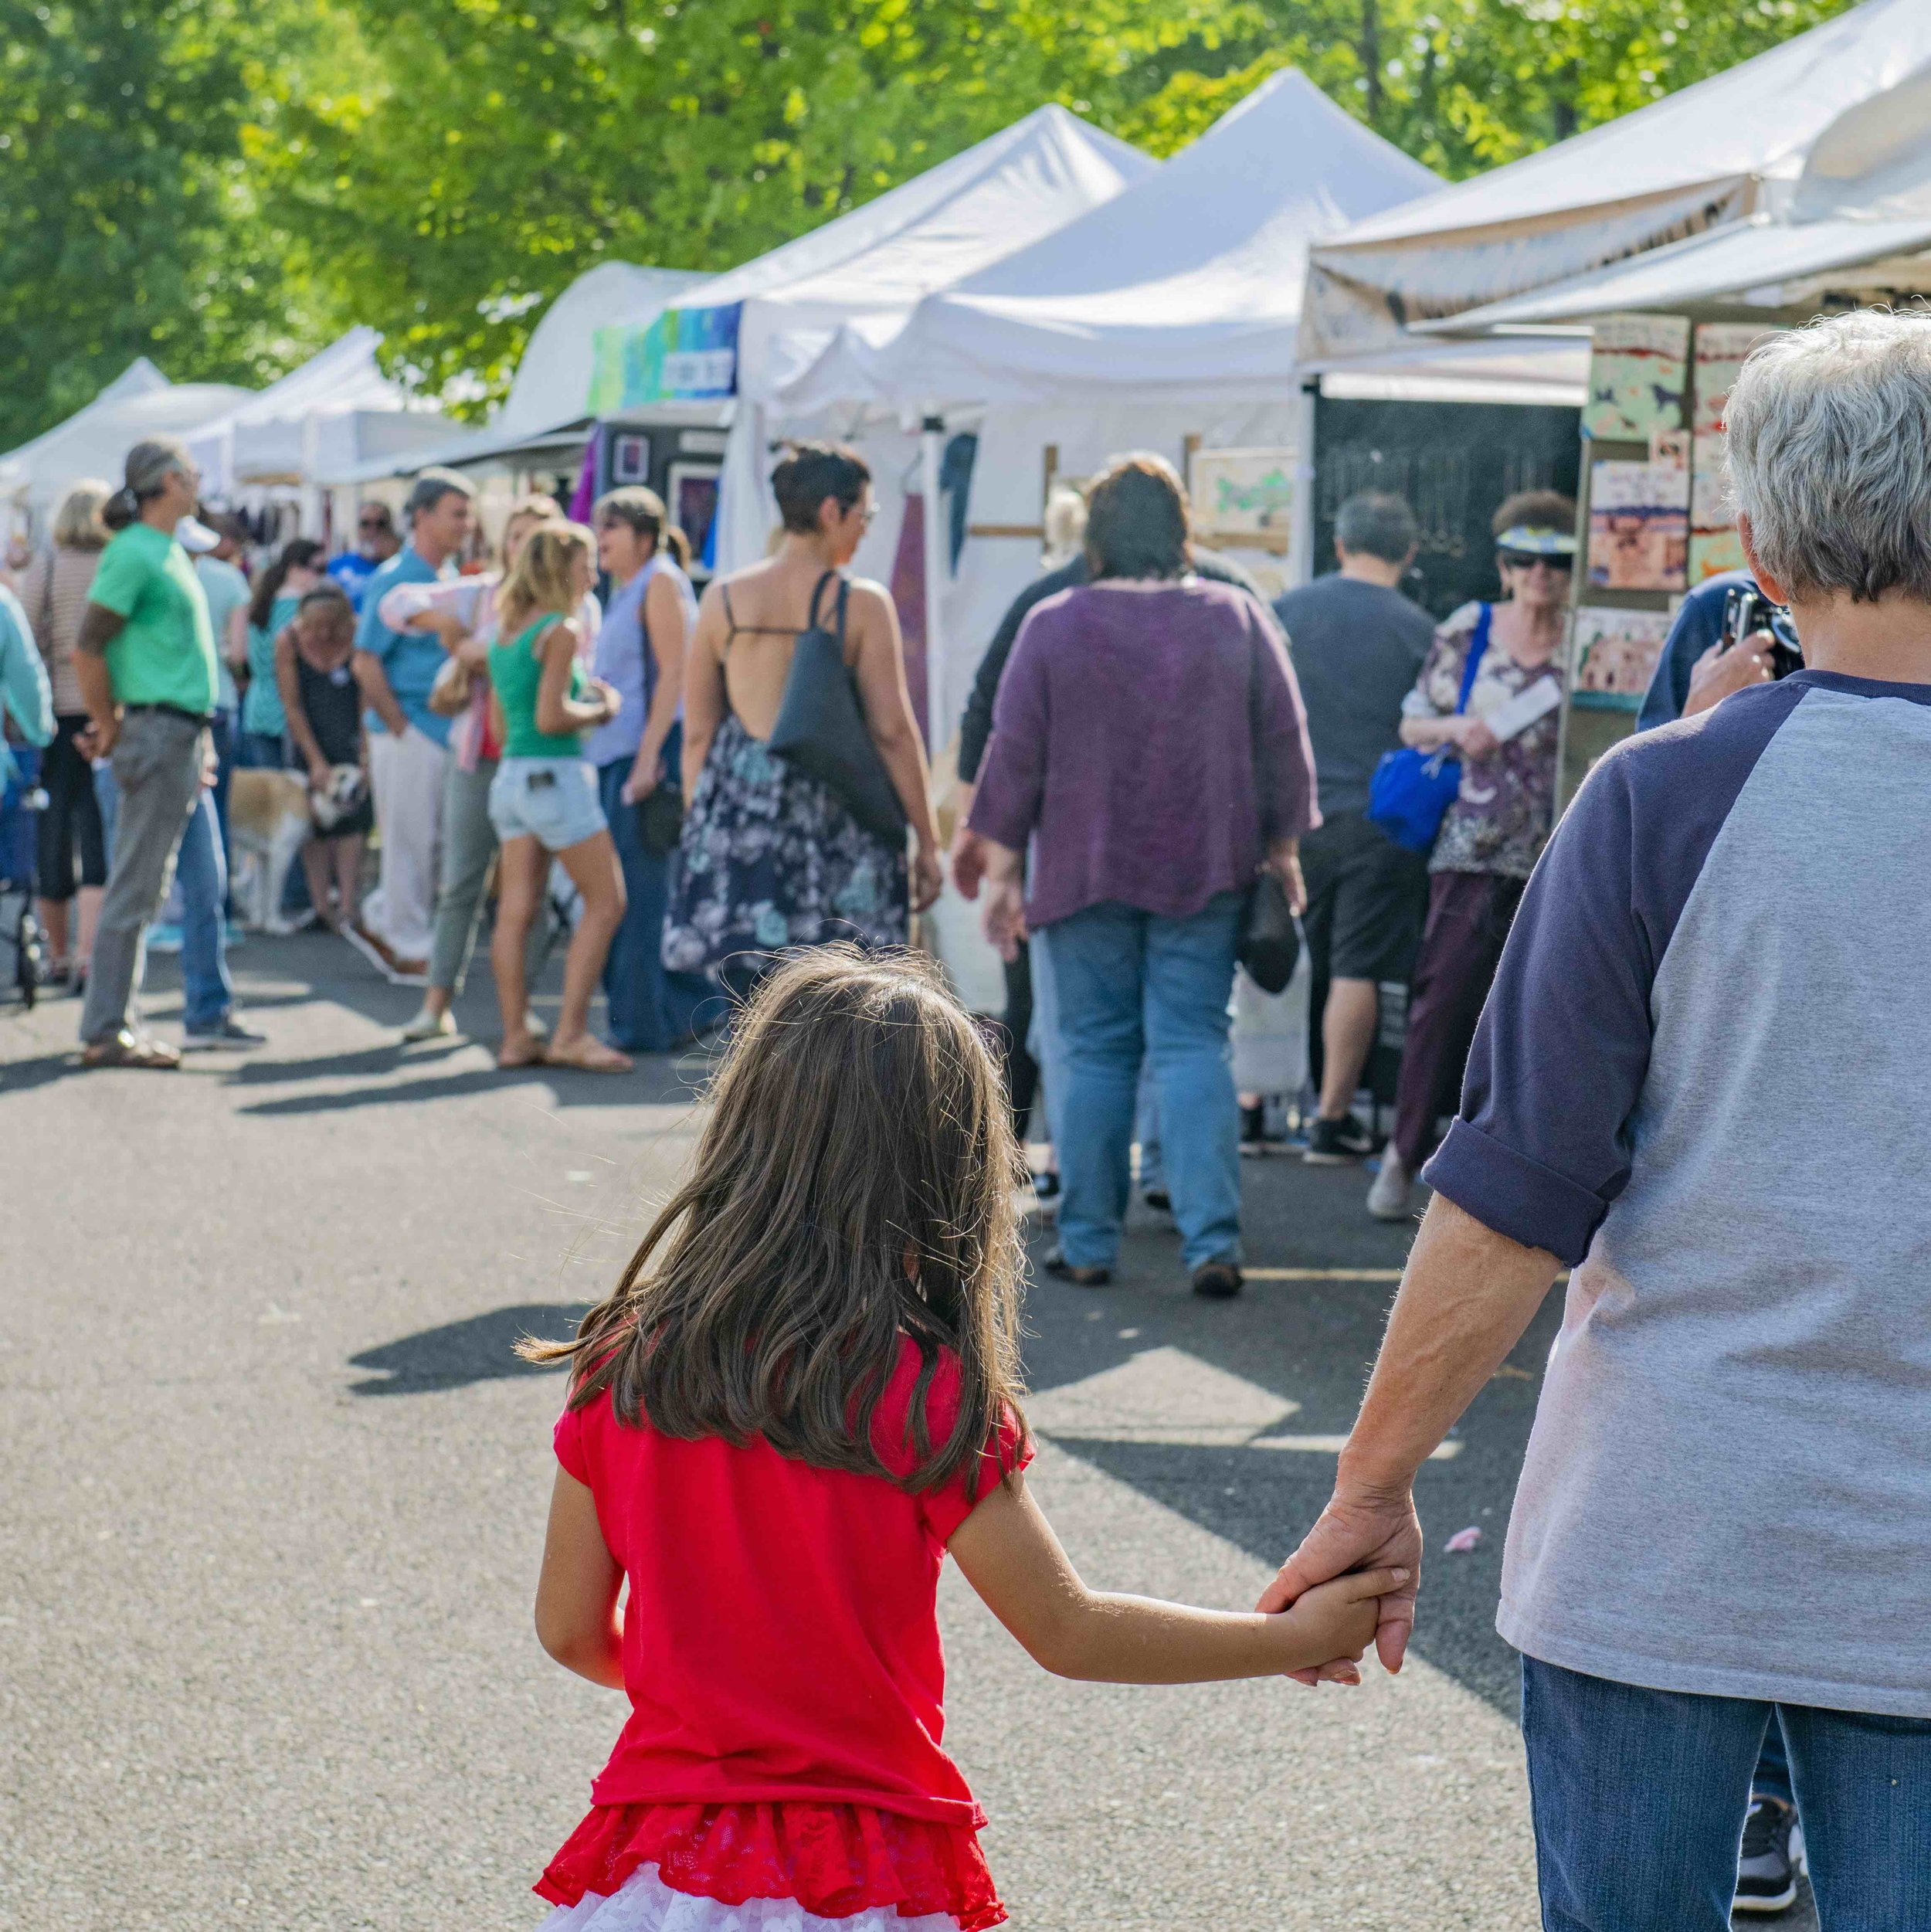 Between the fresh air and walking the picturesque setting of the New Hope Arts and Crafts Festival, families will love discovering this ideal way of exposing young people to the arts, all the while connecting unplugged! Photo Credit: Kristina Gibb